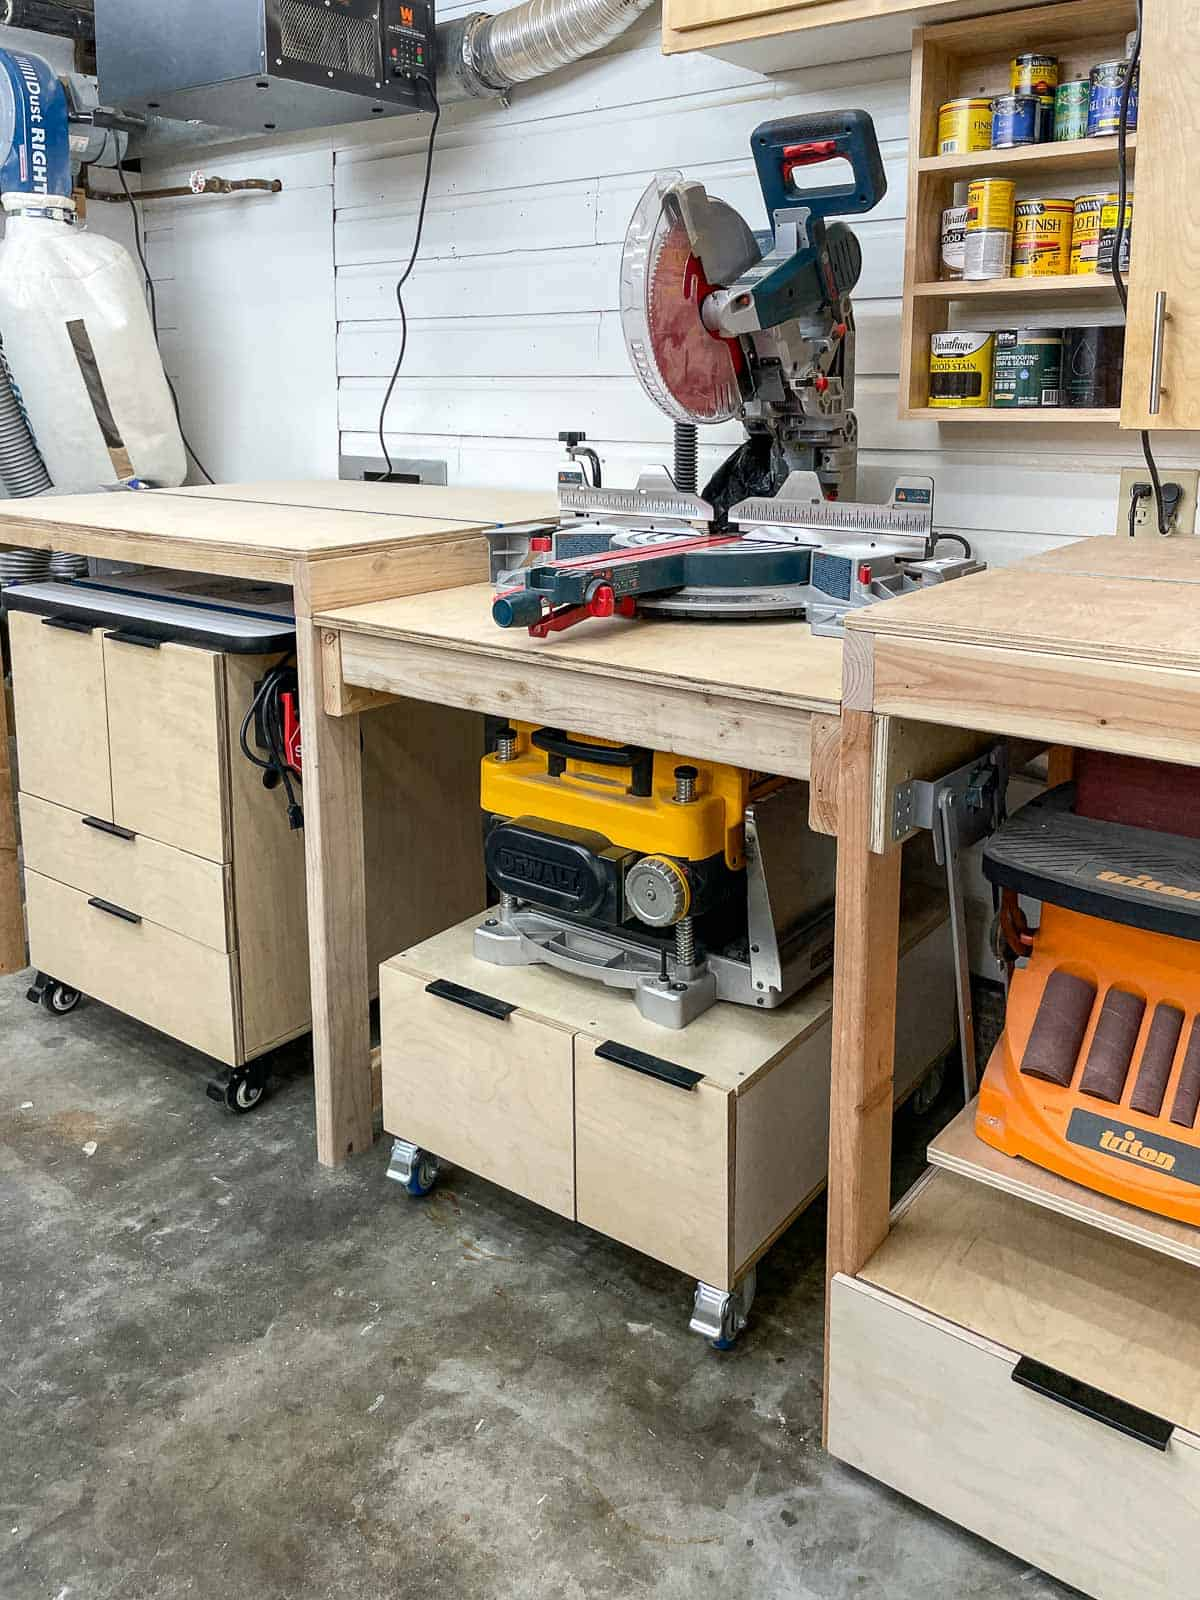 miter saw station with router table, planer stand and benchtop sander